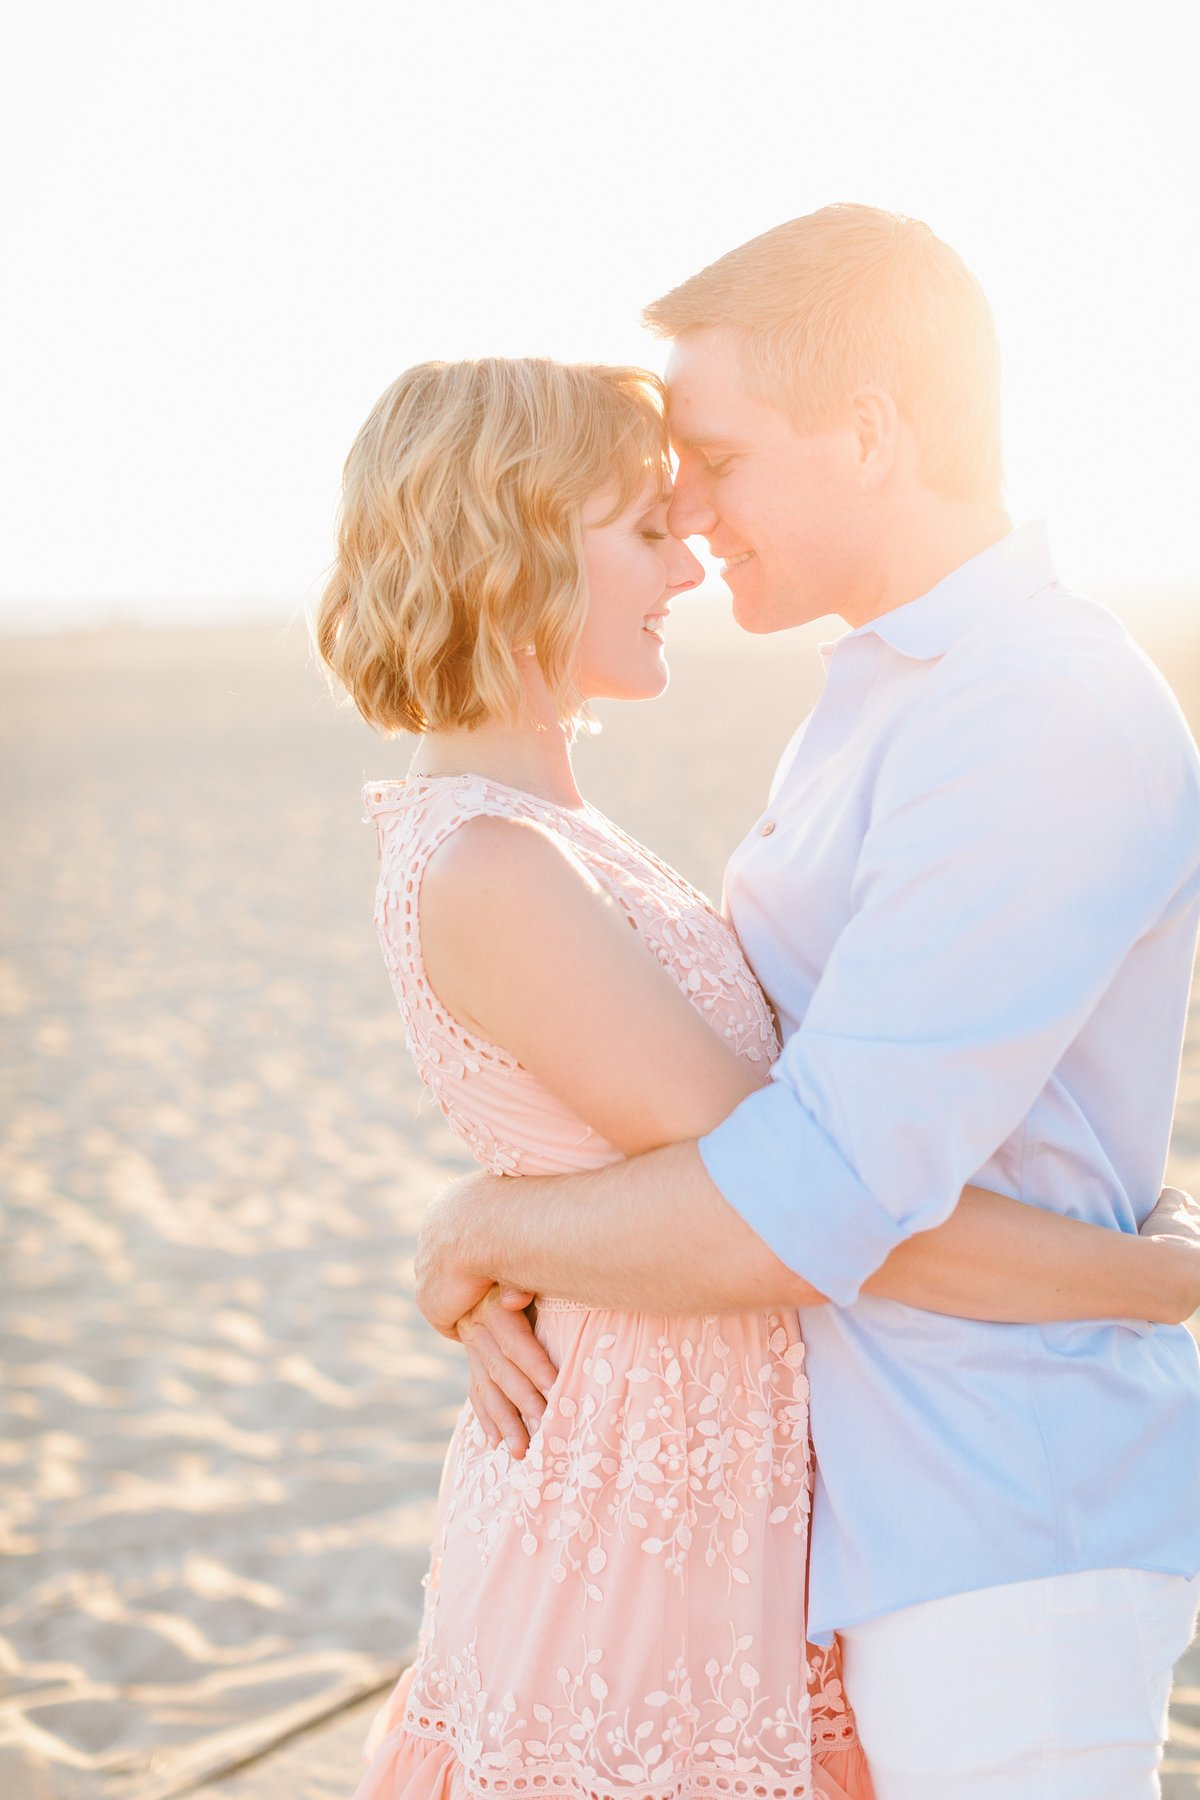 Best California Engagement Photographer_Jodee Debes Photography_056